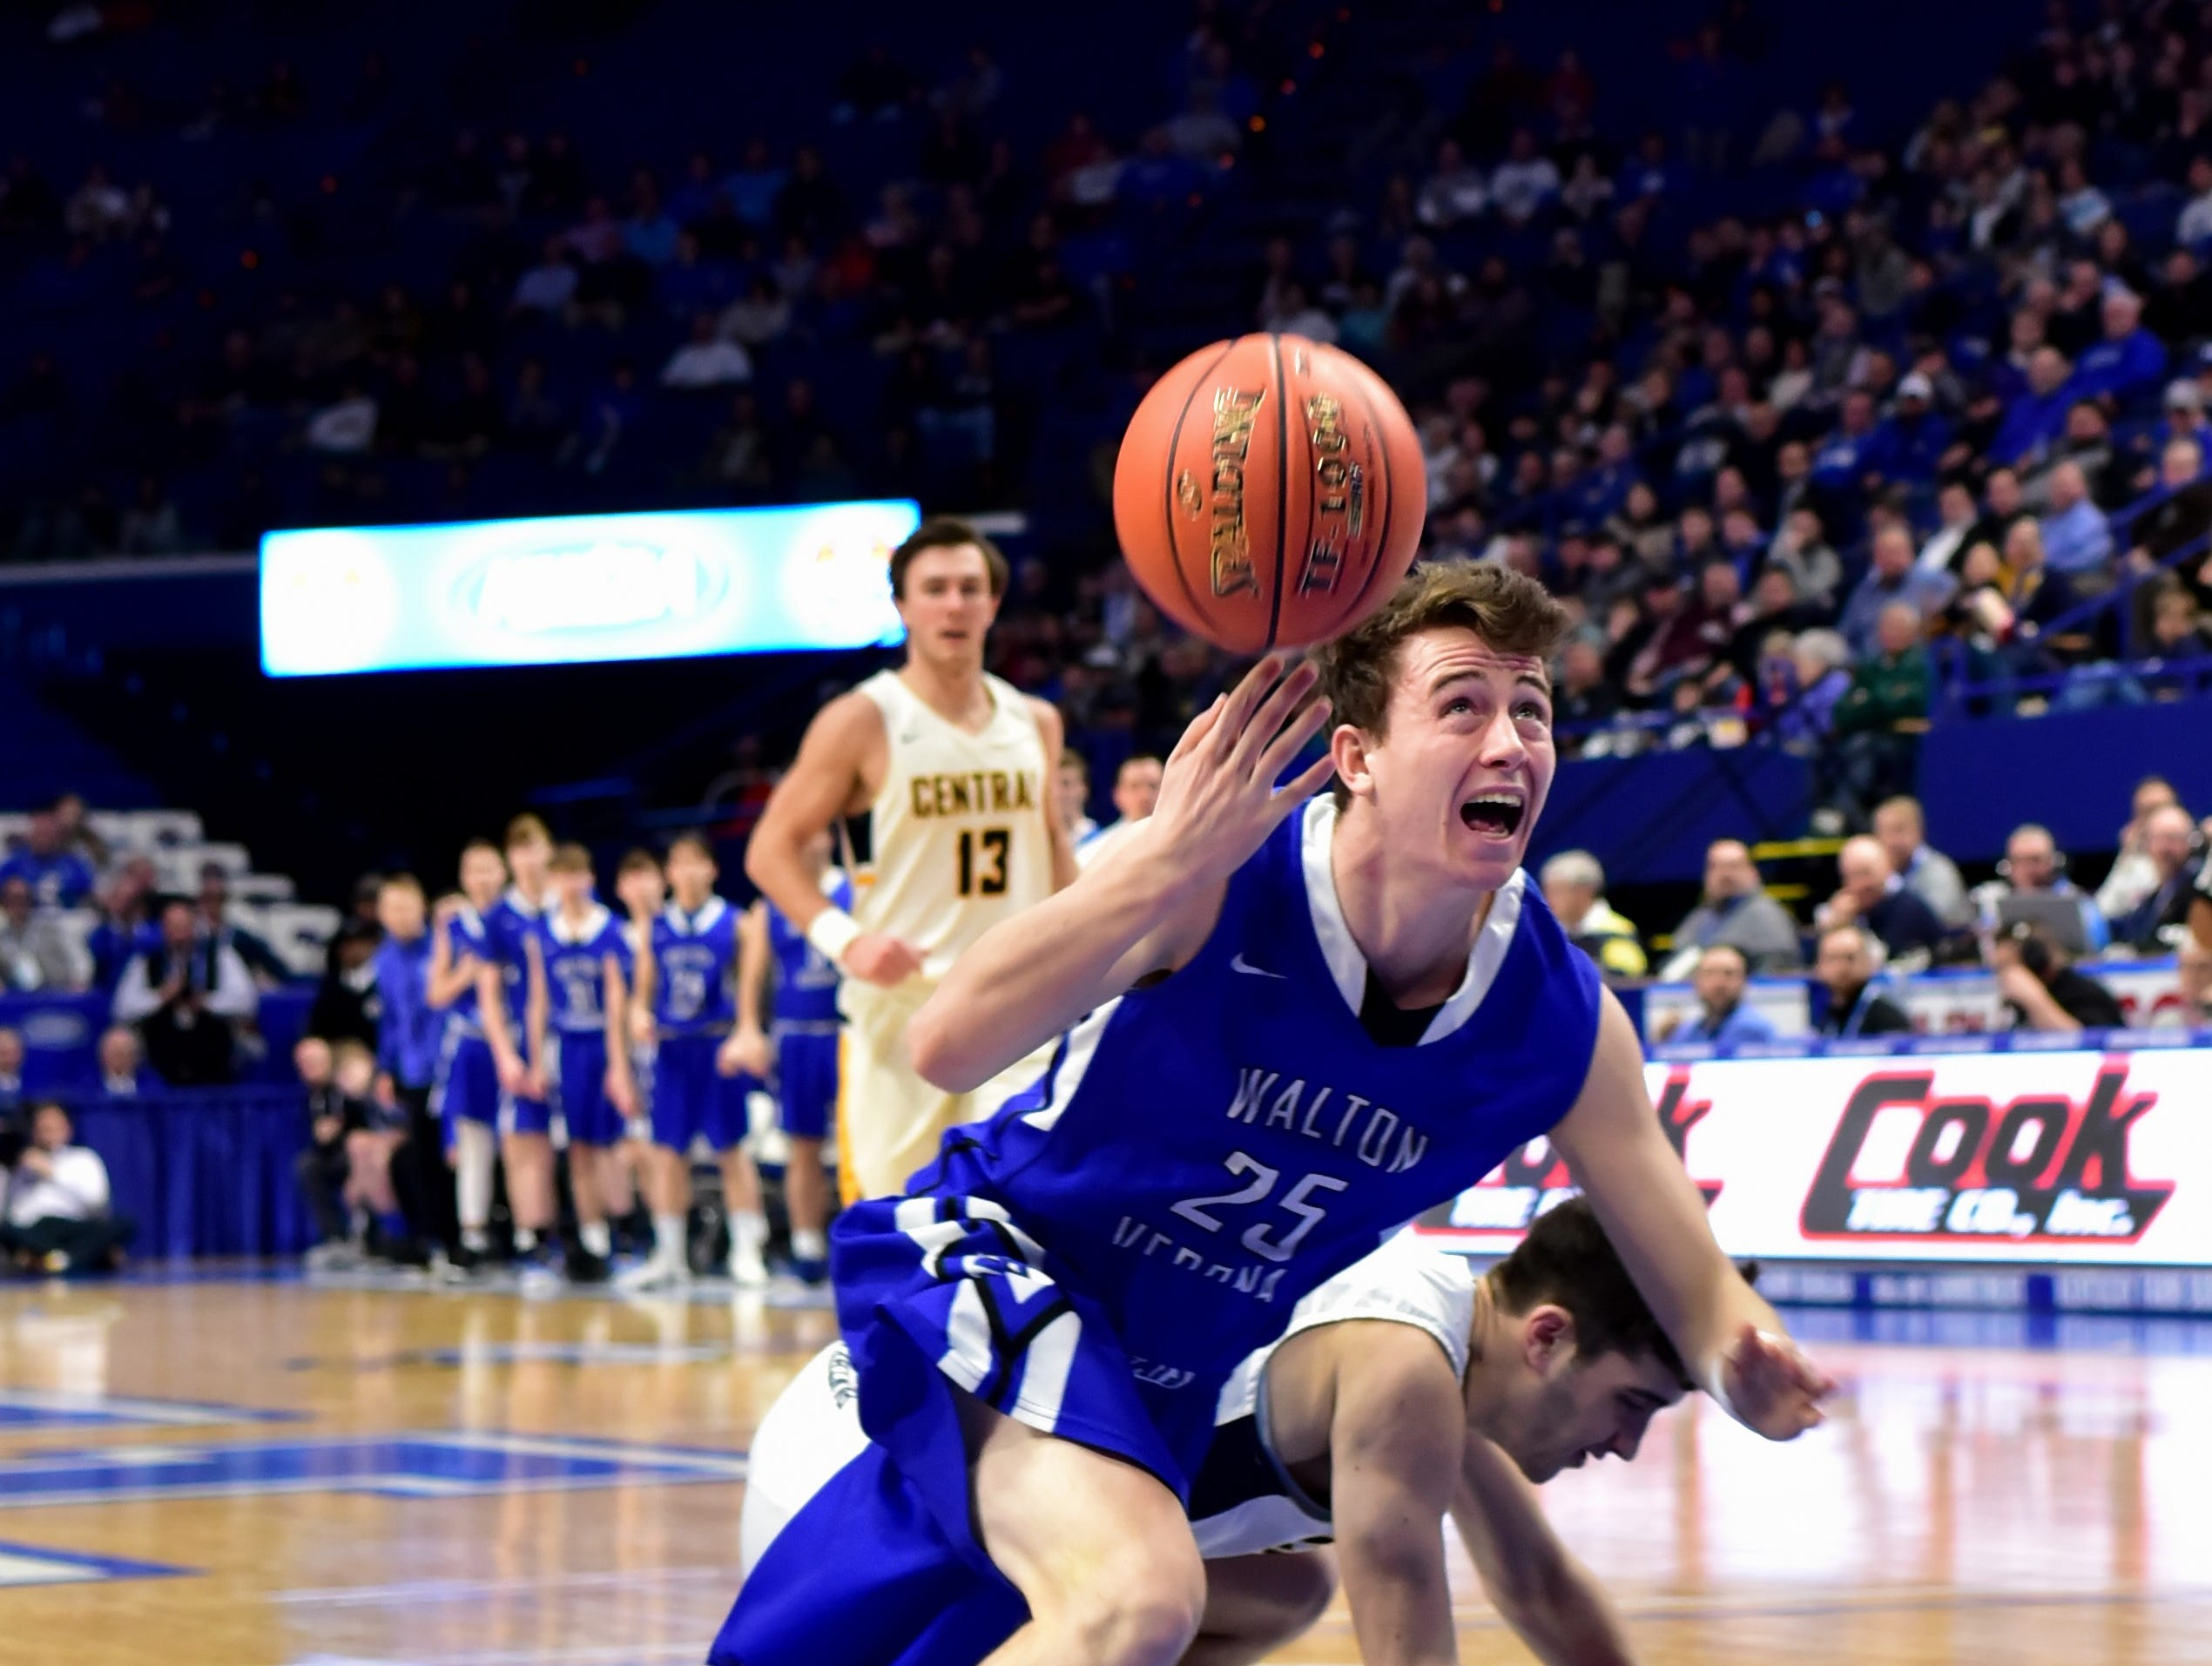 Kameron Pardee lifts up a shot off the floor and collects the foul for Walton Verona as the Bearcats advance at the KHSAA Sweet 16 Tournament at Rupp Arena in Lexington, KY, March 6, 2019